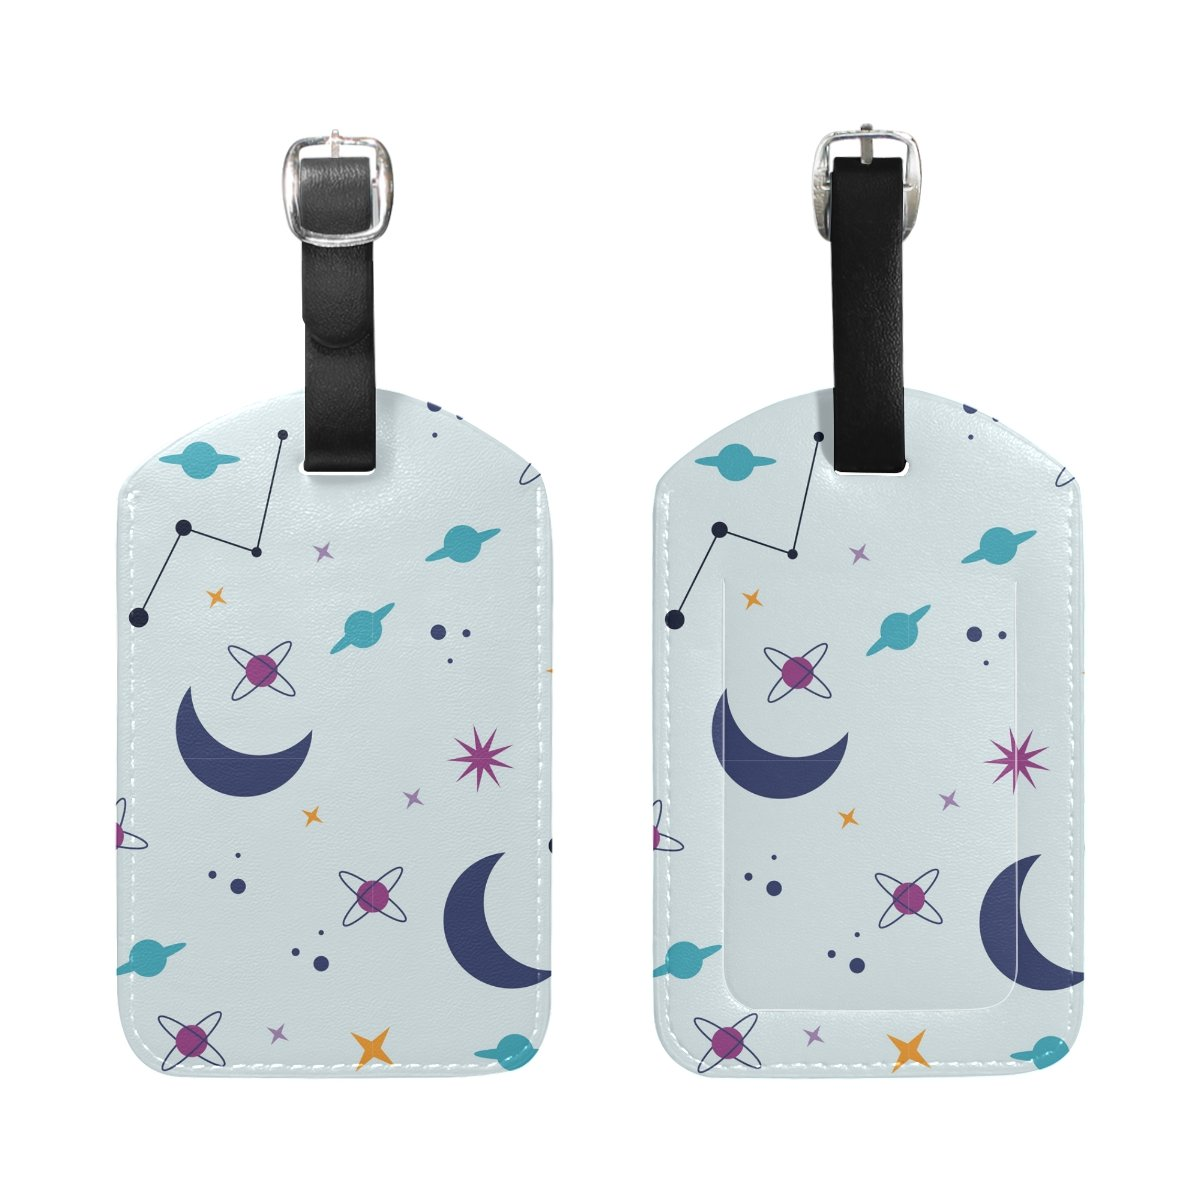 1Pcs Saobao Travel Luggage Tag Moon And Star PU Leather Baggage Suitcase Travel ID Bag Tag